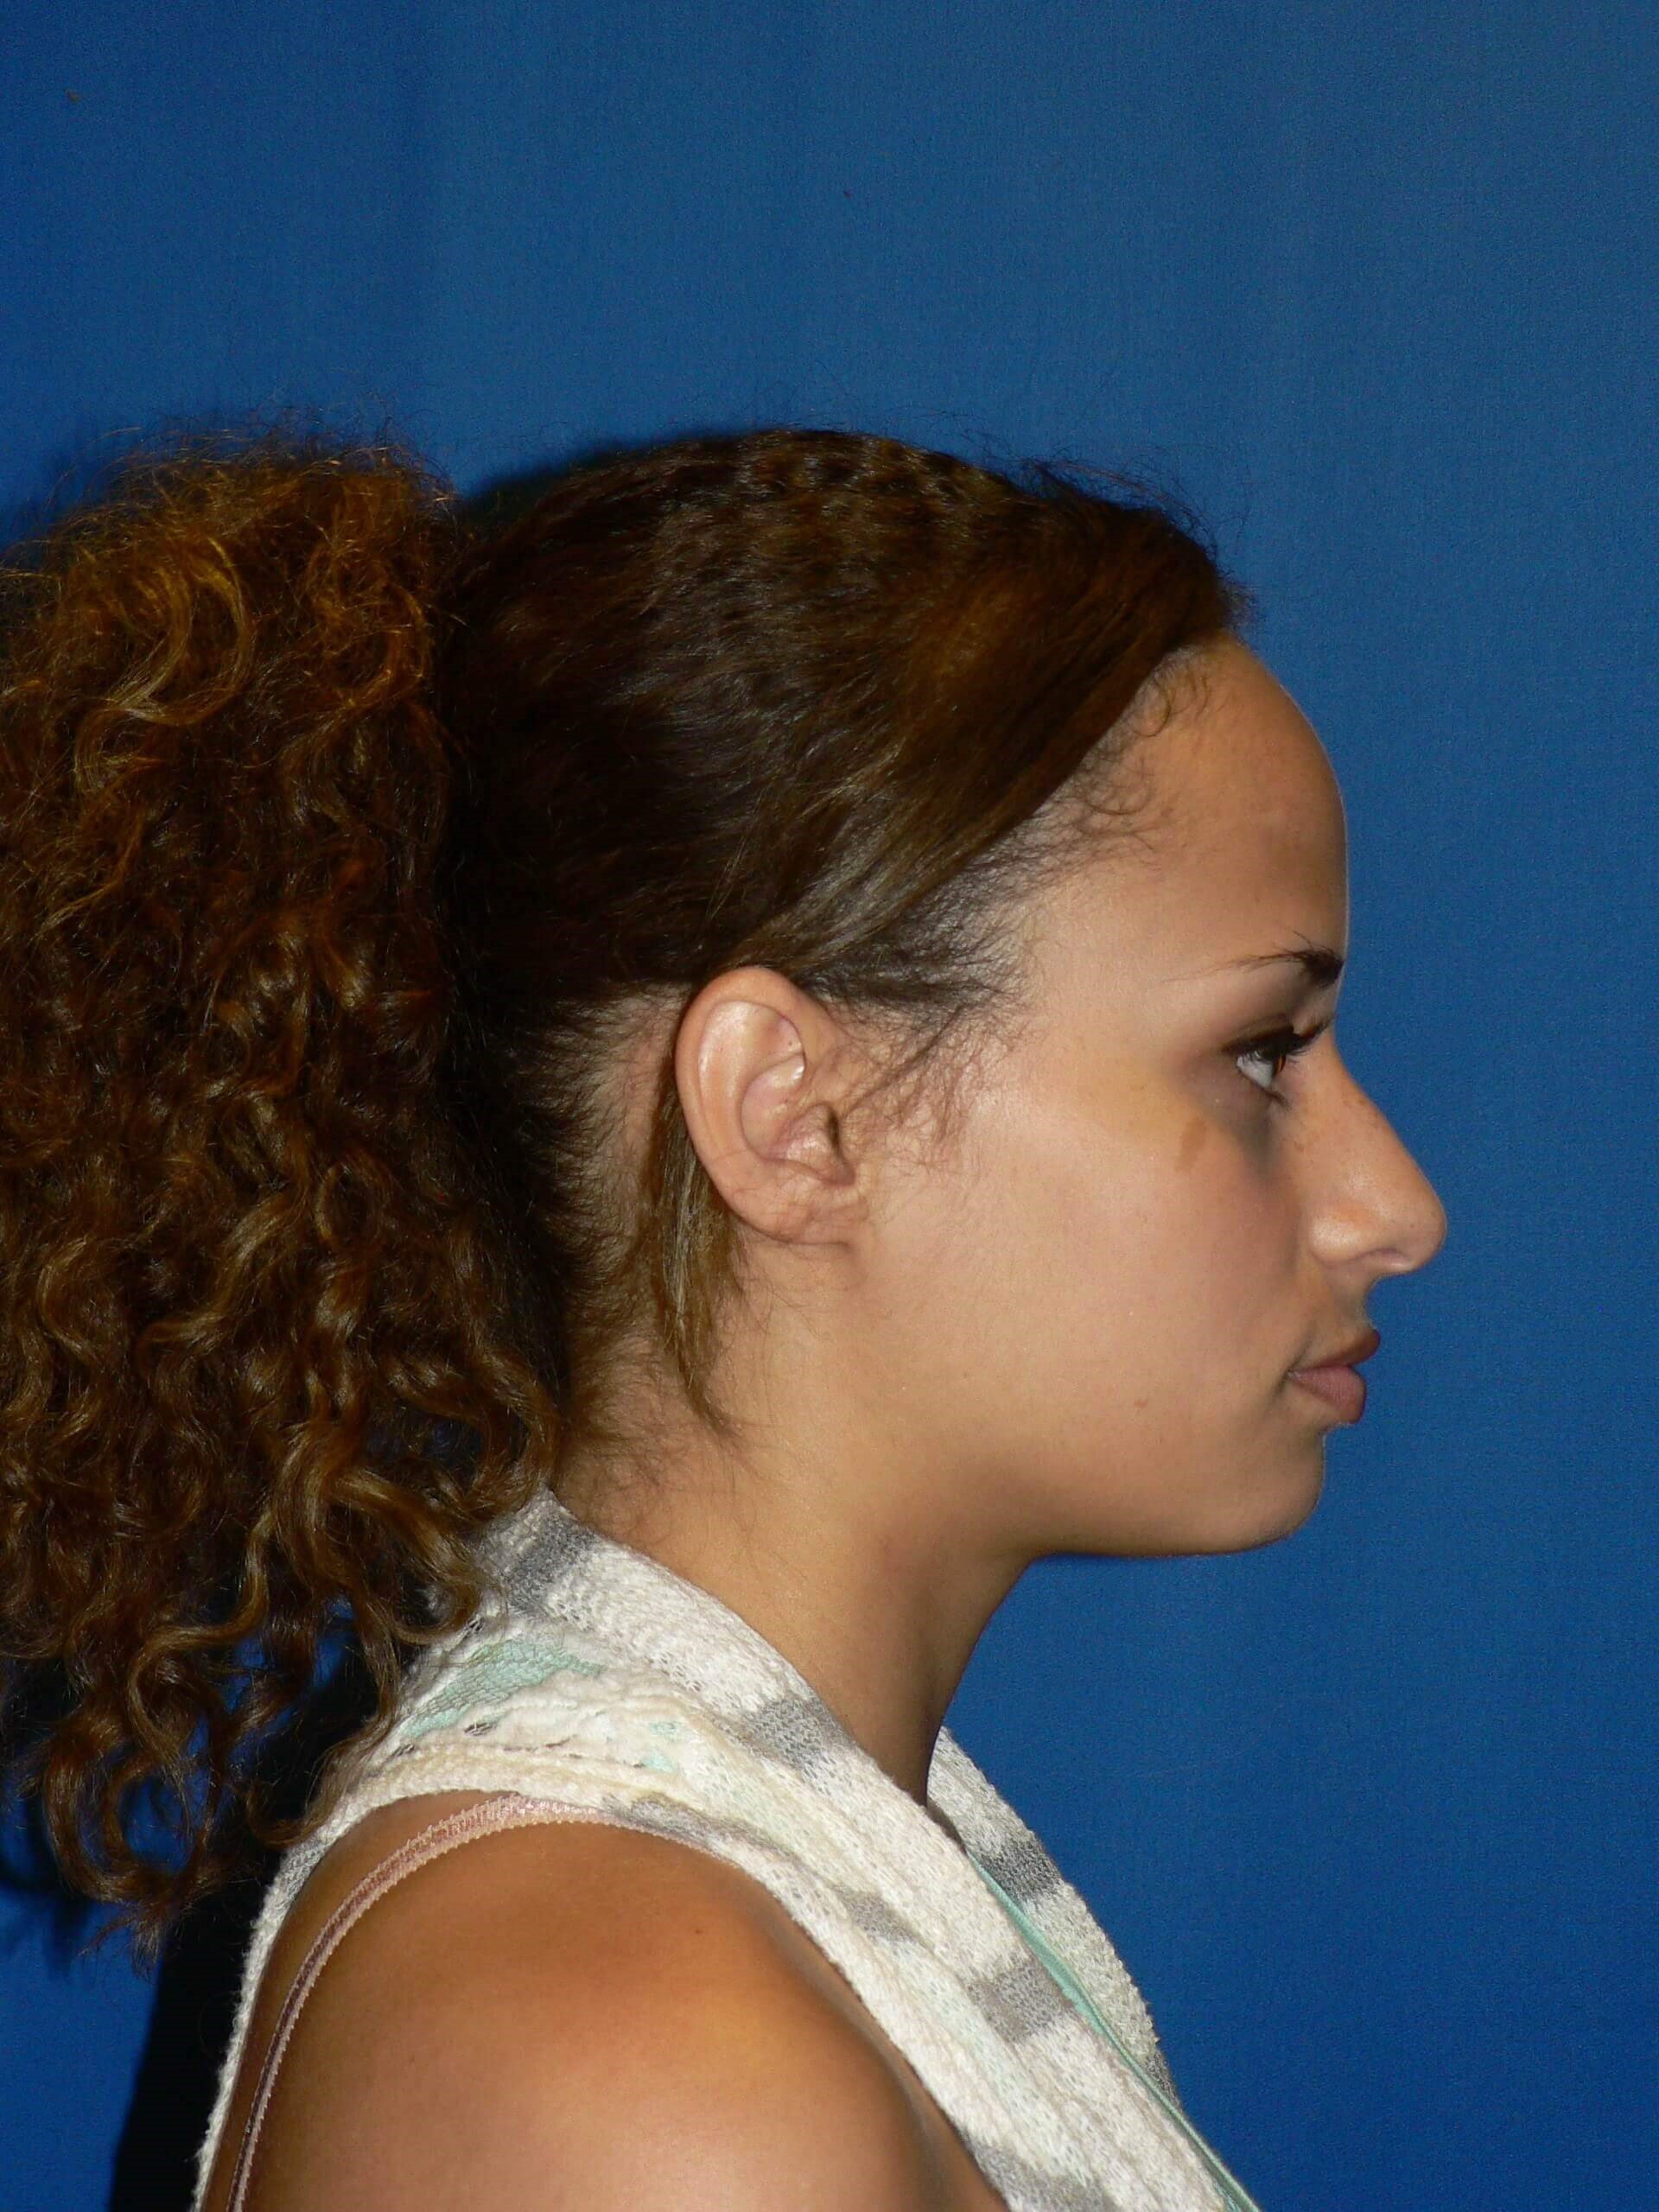 Ethnic Rhinoplasty Denver Before